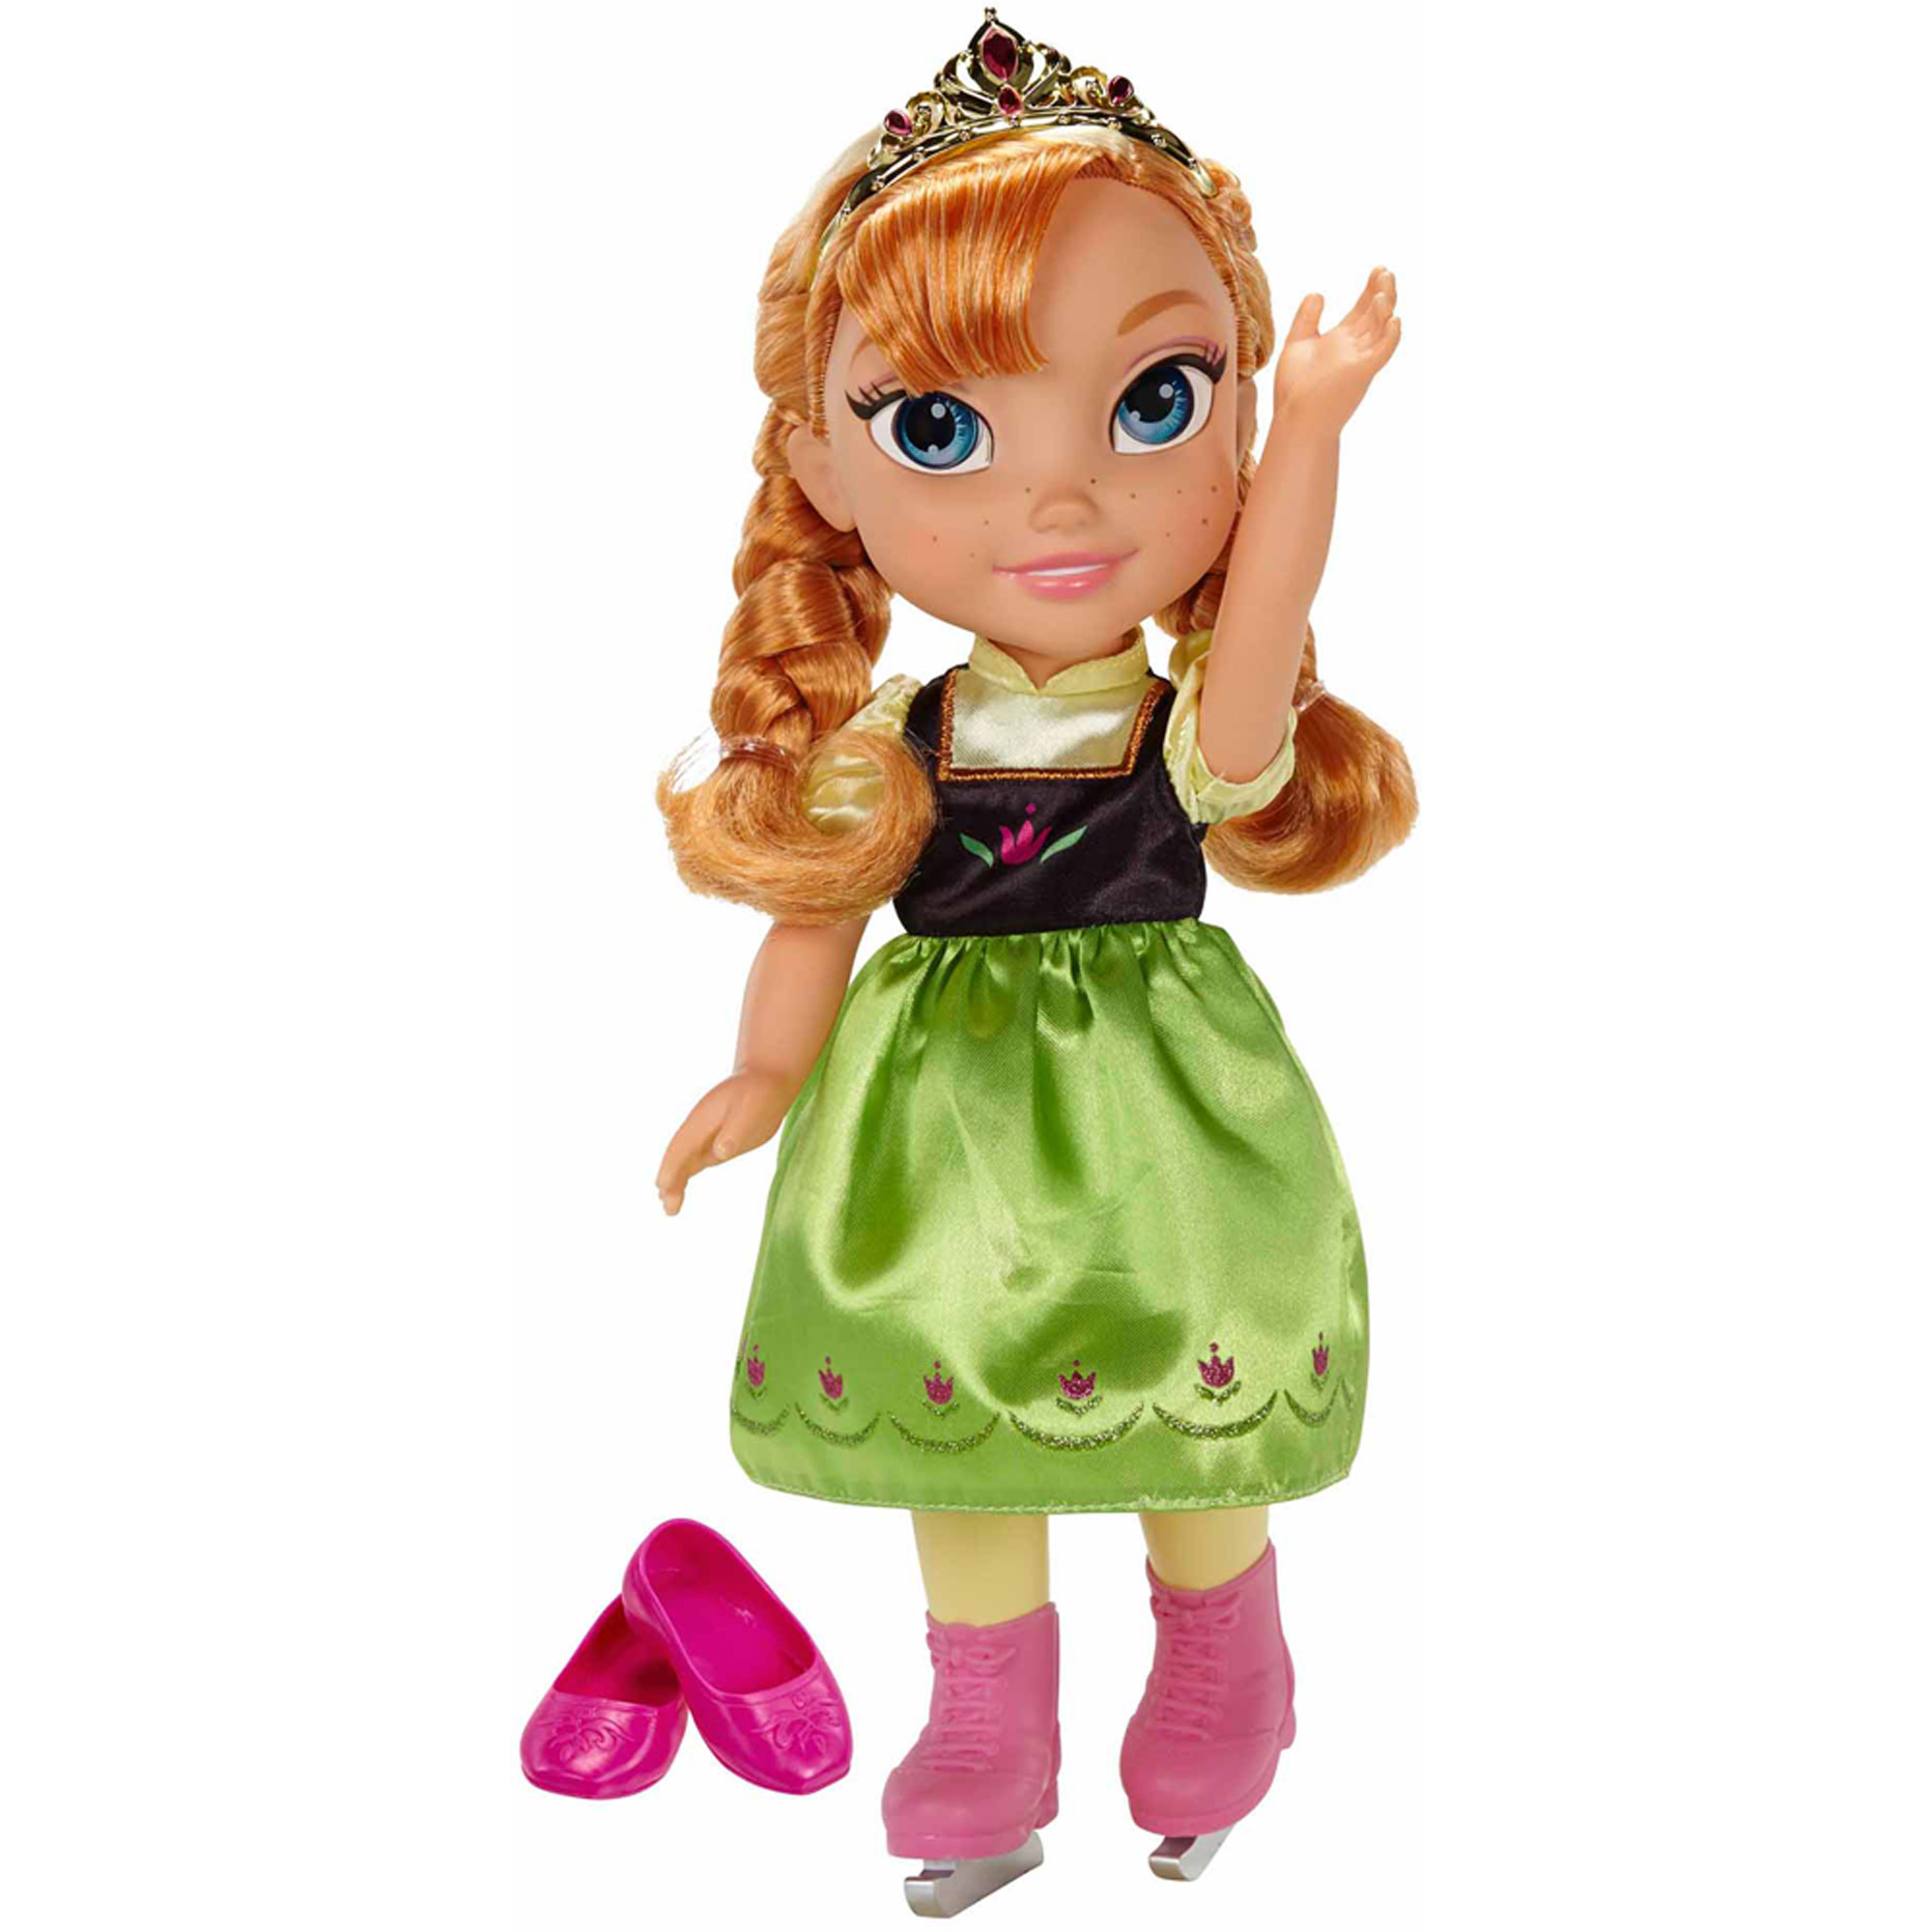 Disney Princess Deluxe Toddler Anna with Ice Skating Fashions and Skates by Jakks Pacific